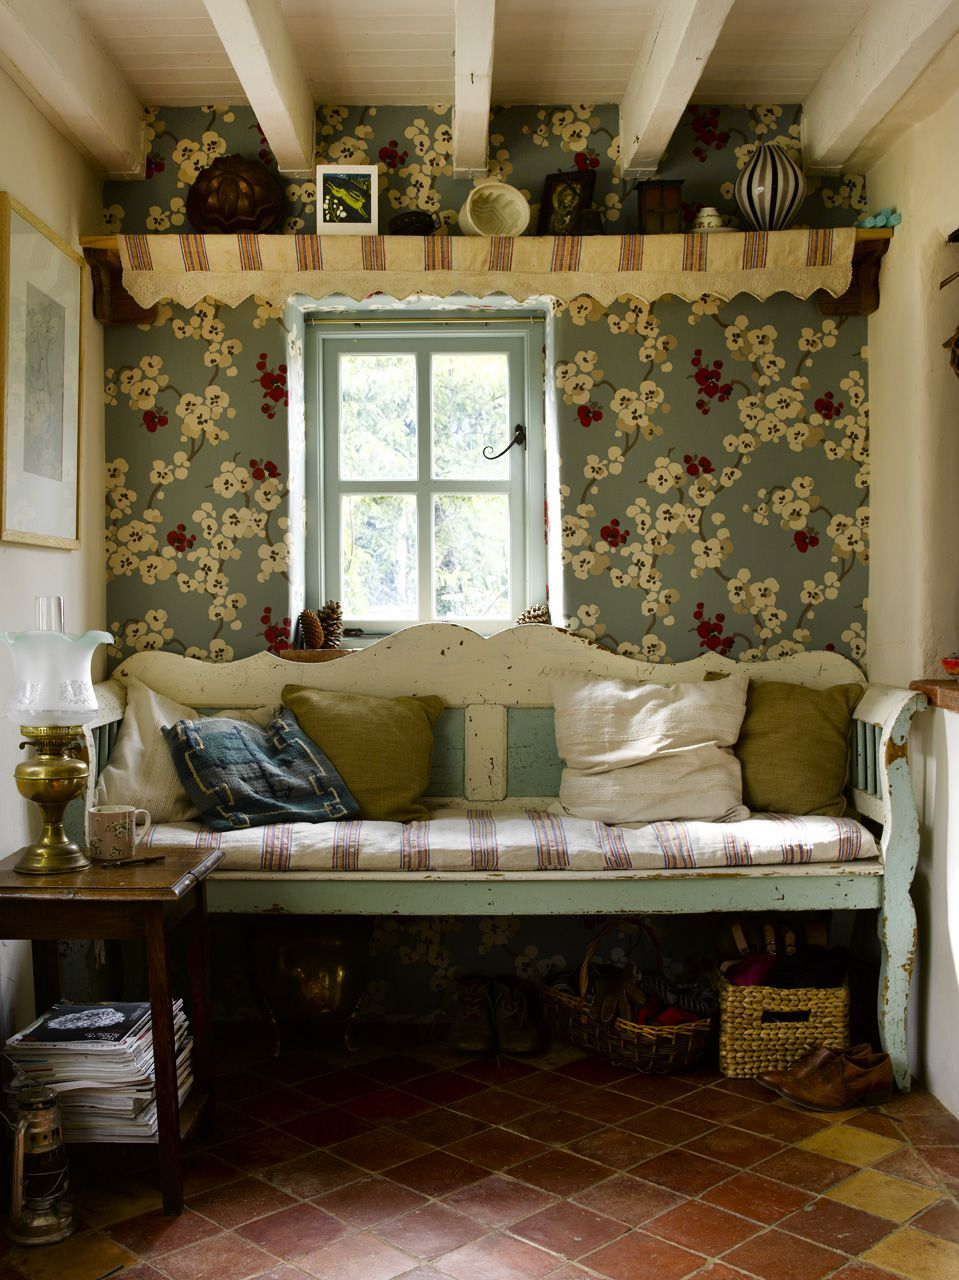 Small Cottage Interiors Cozy Home Office Cottage: I'm A Bit Scared Of Wallpaper In Small Spaces But This Little Snug Proves That It Can Be Lovely